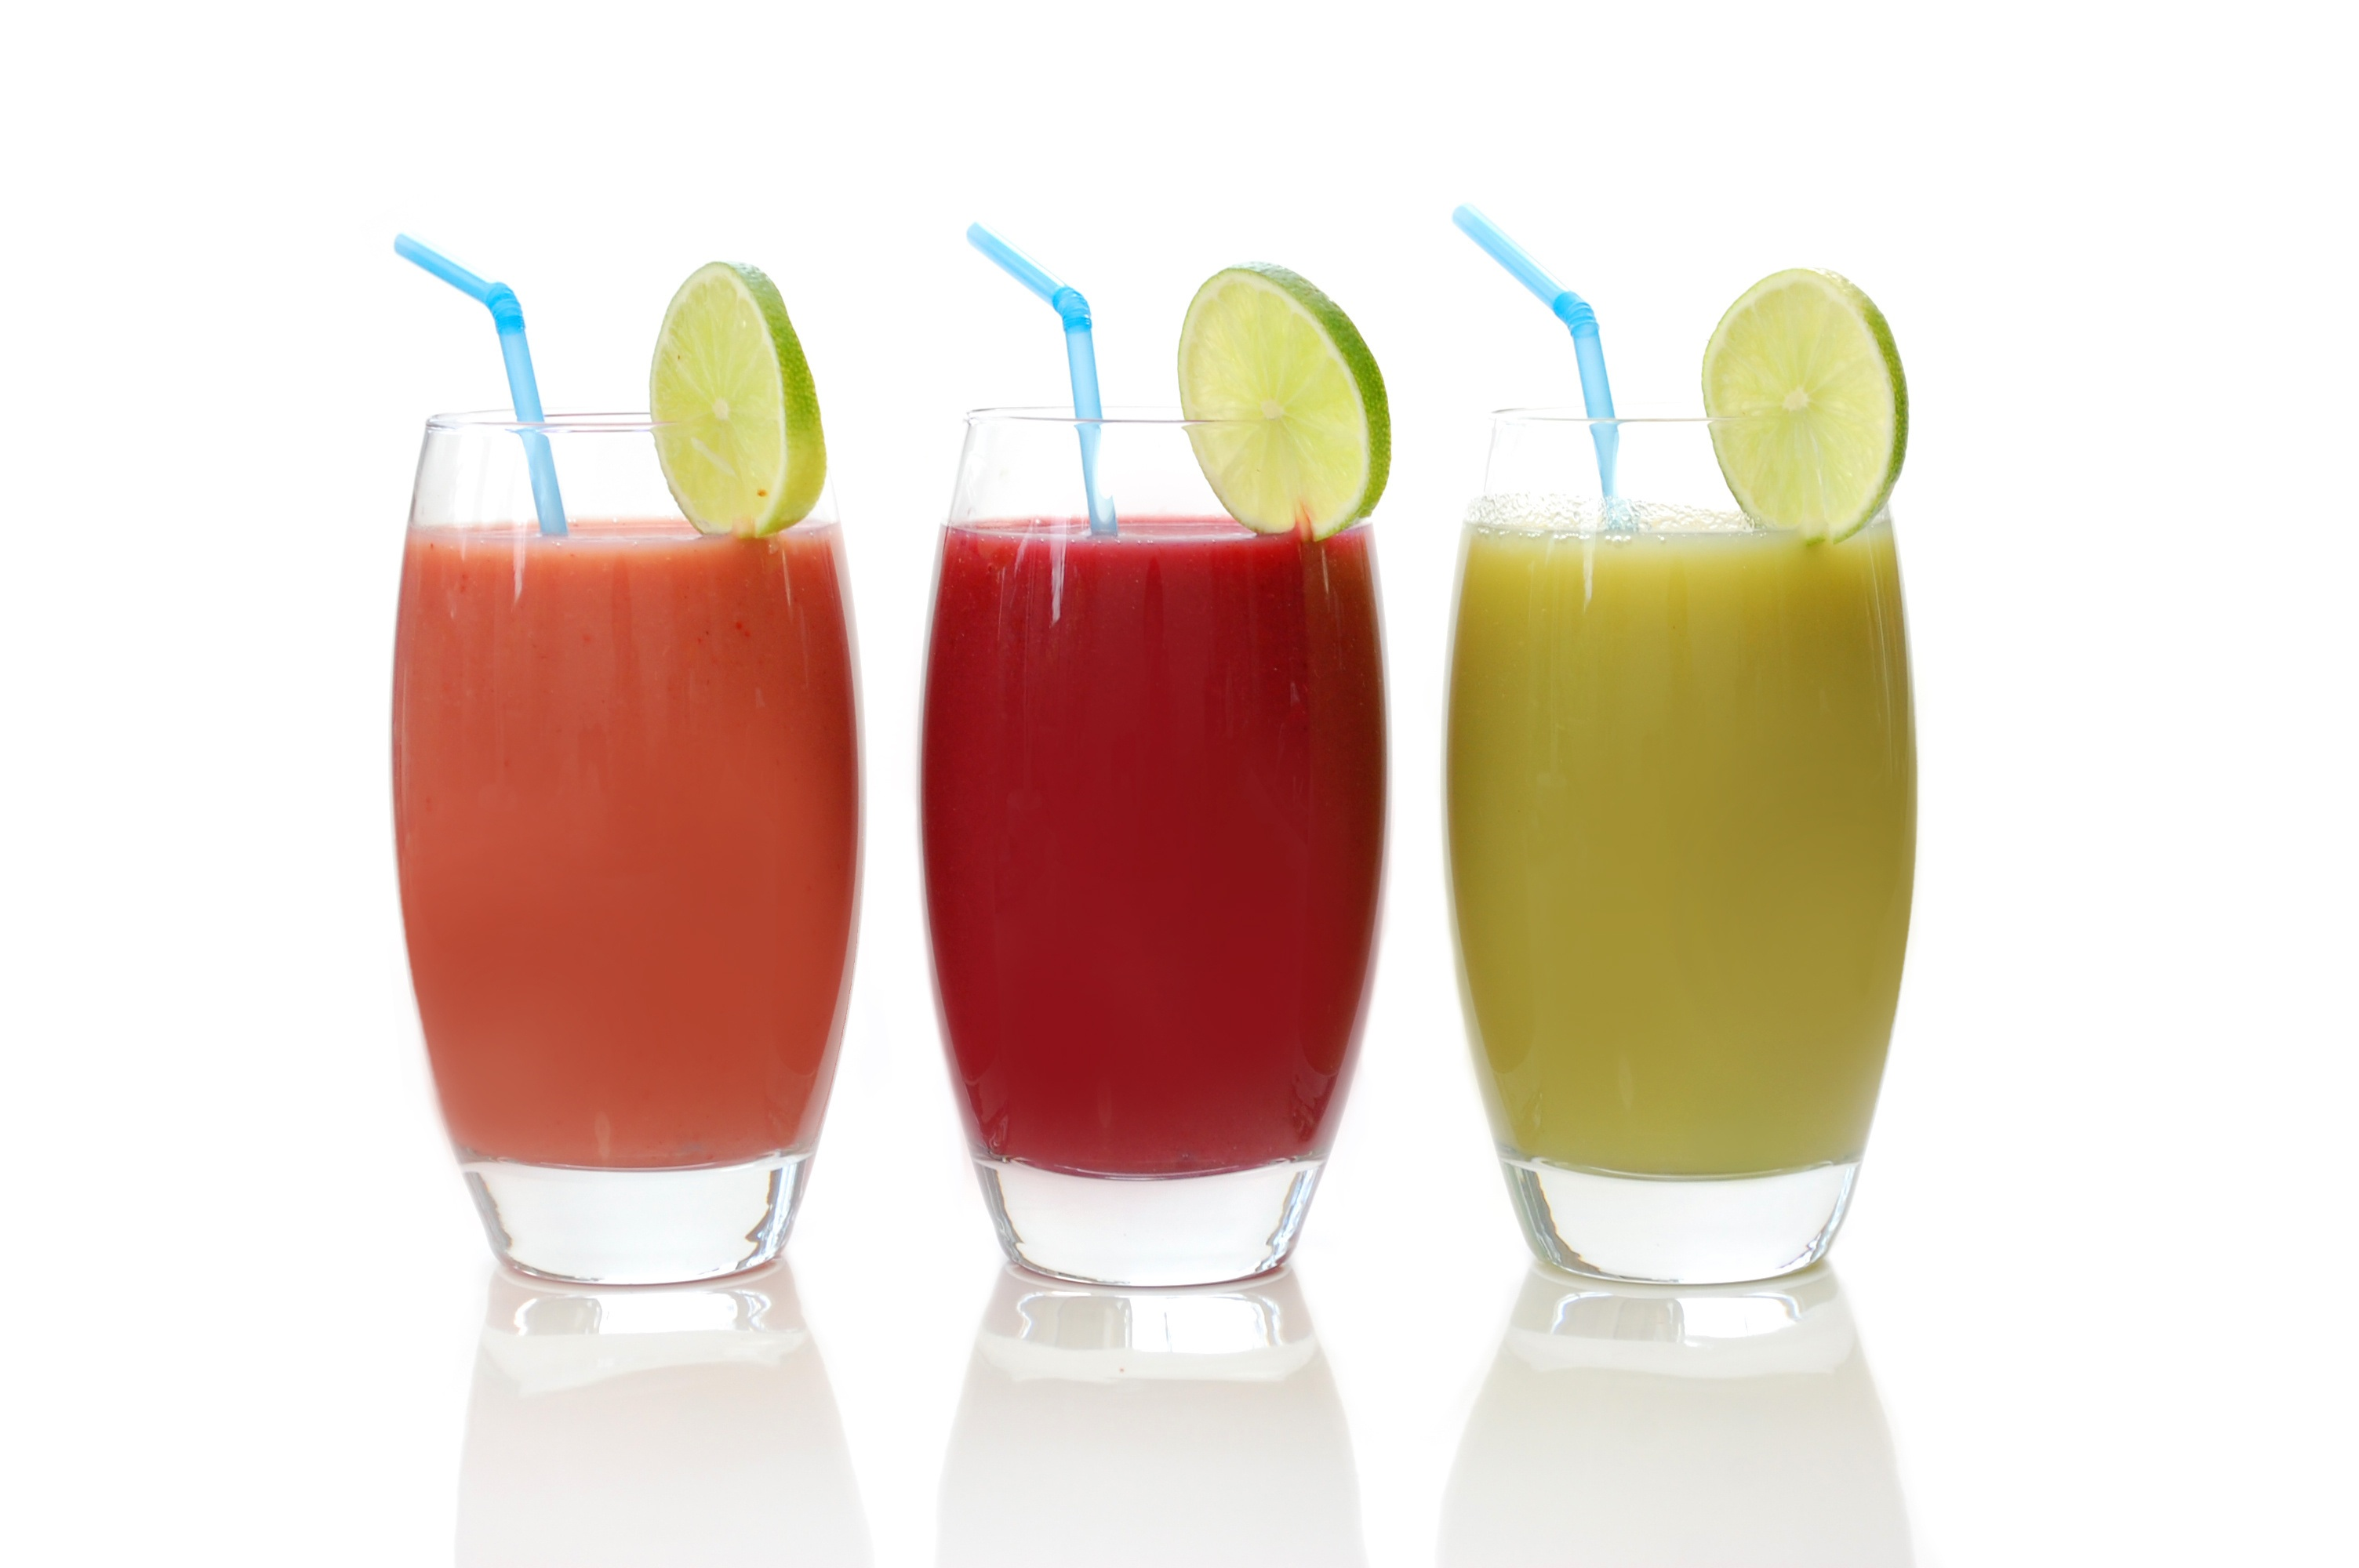 Juice with Lime Garnish 4460.89 Kb